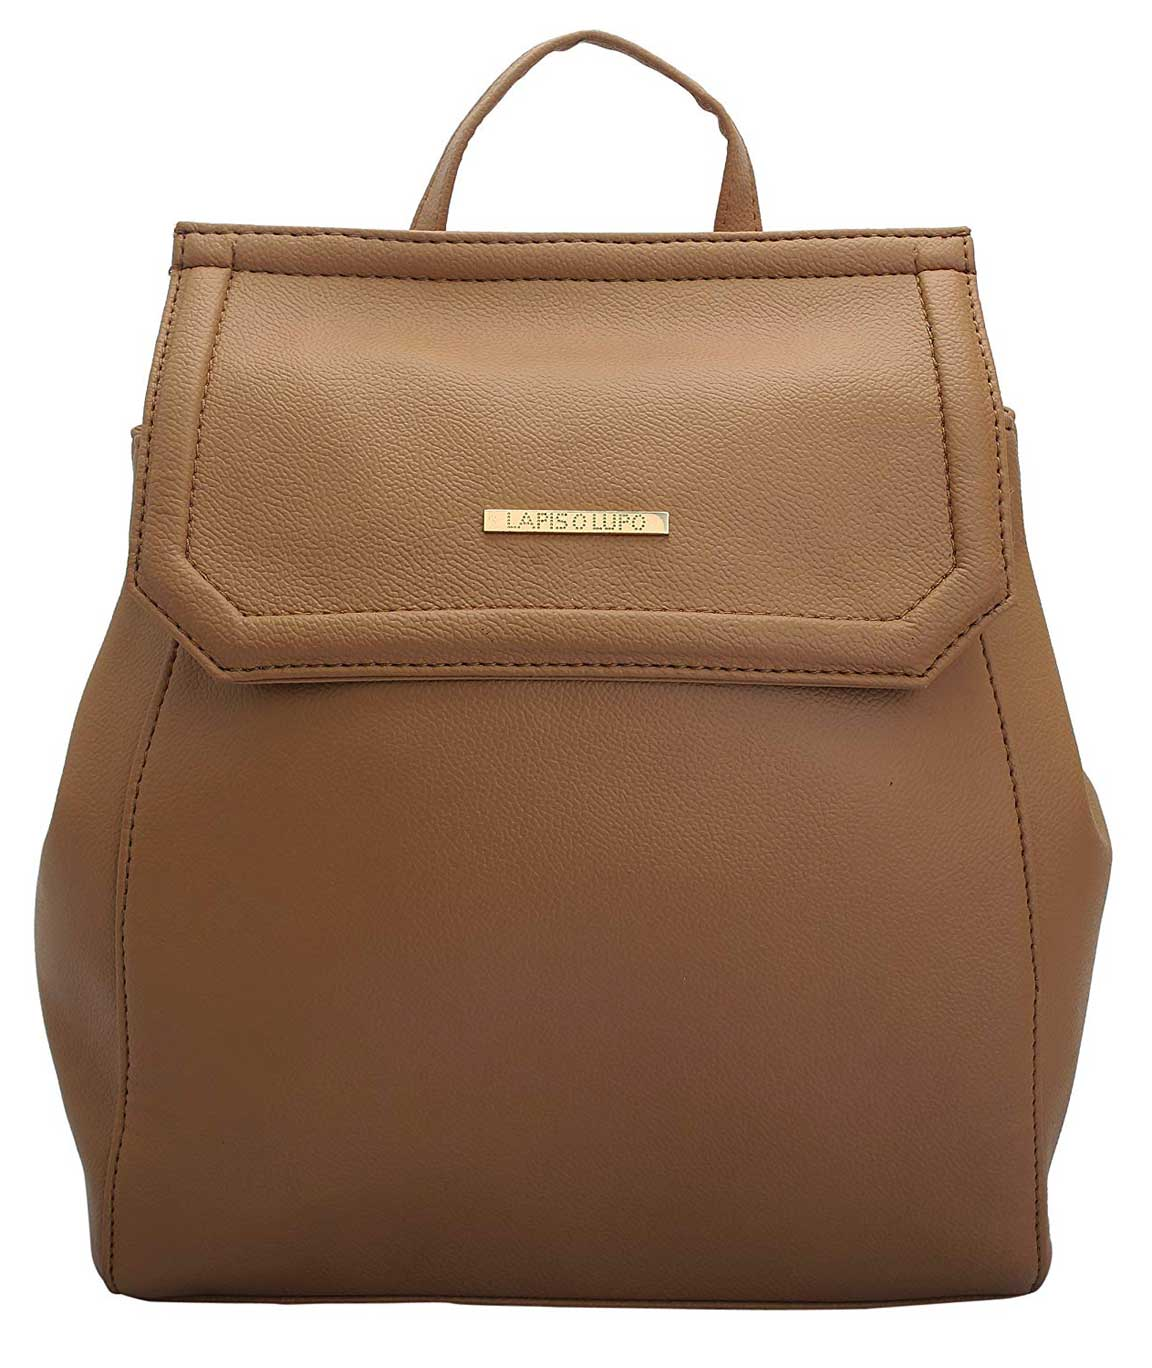 Lapis O Lupo Taupe Women Backpack (Beige)